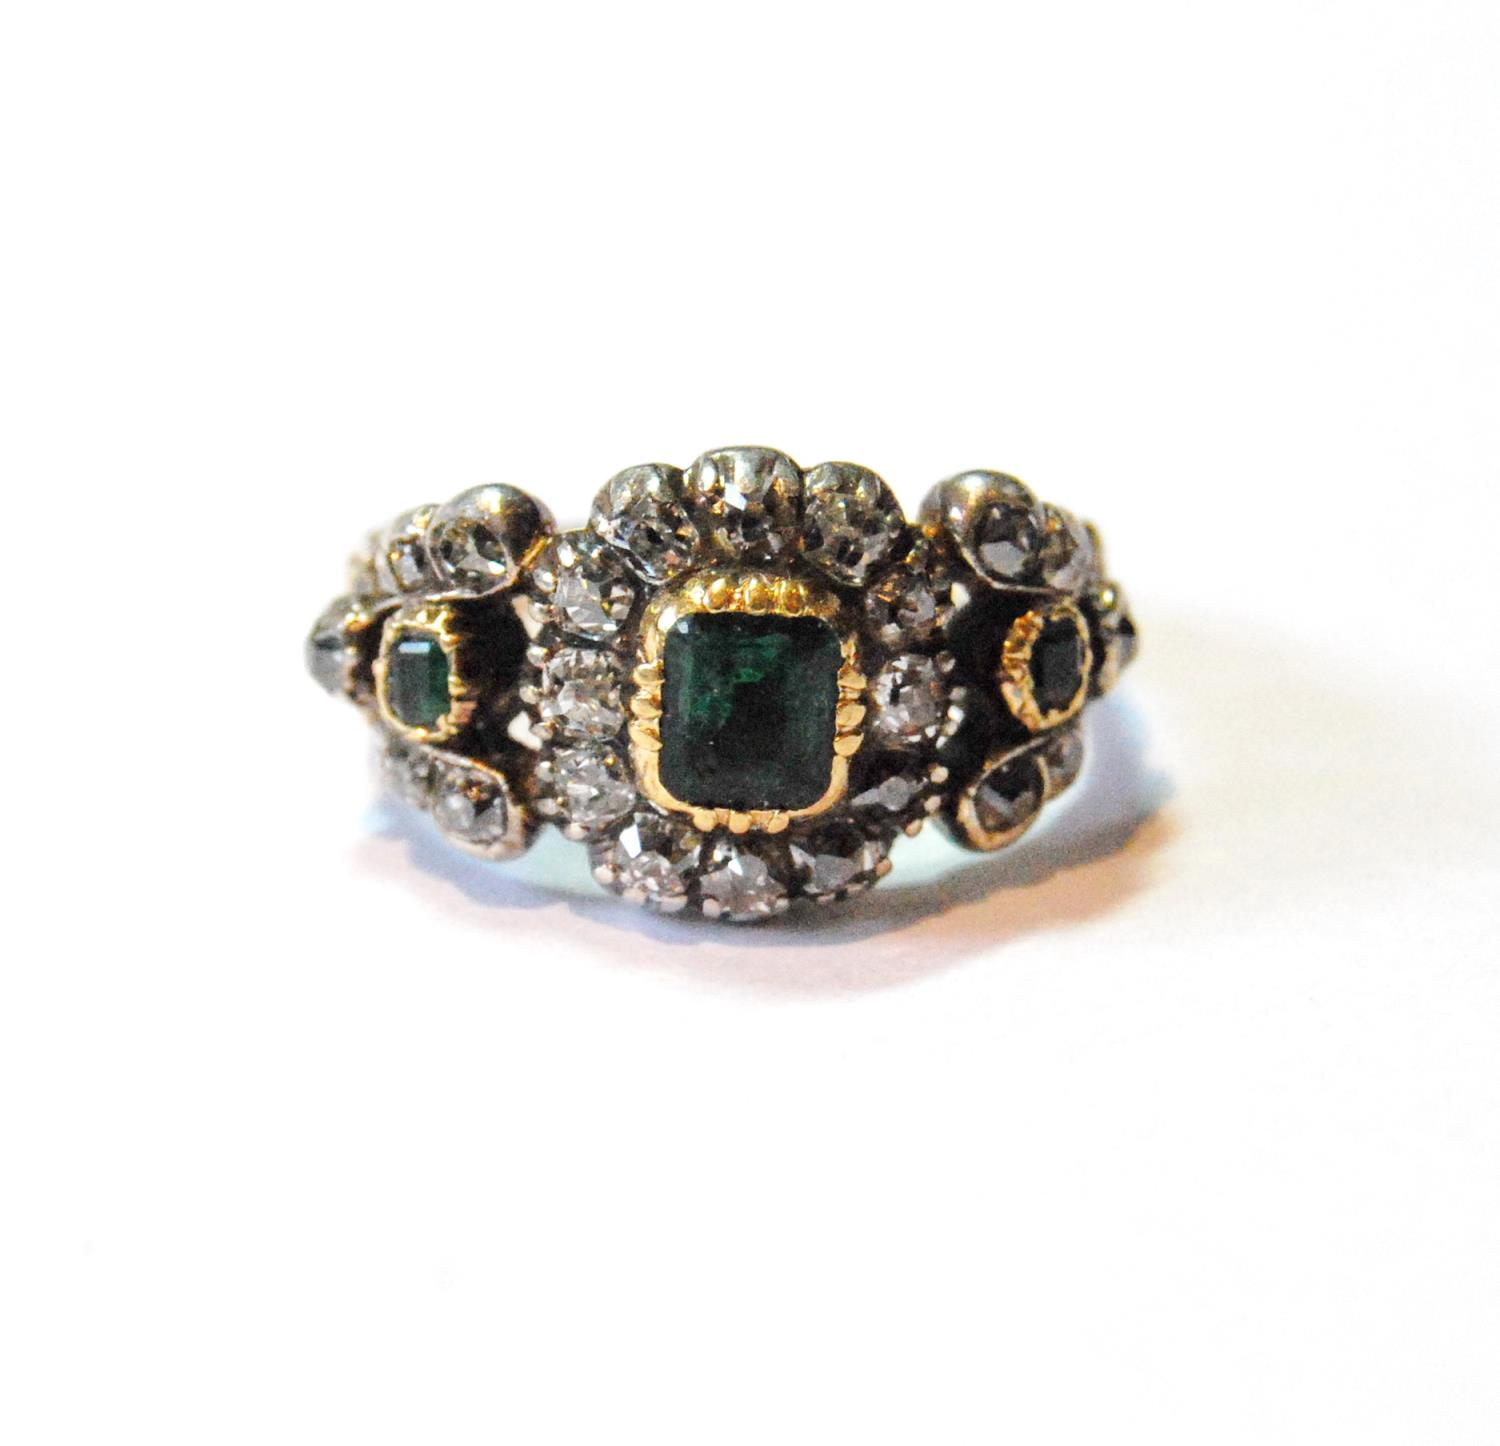 Late Georgian ring with three emeralds and old-cut diamonds, size M½.